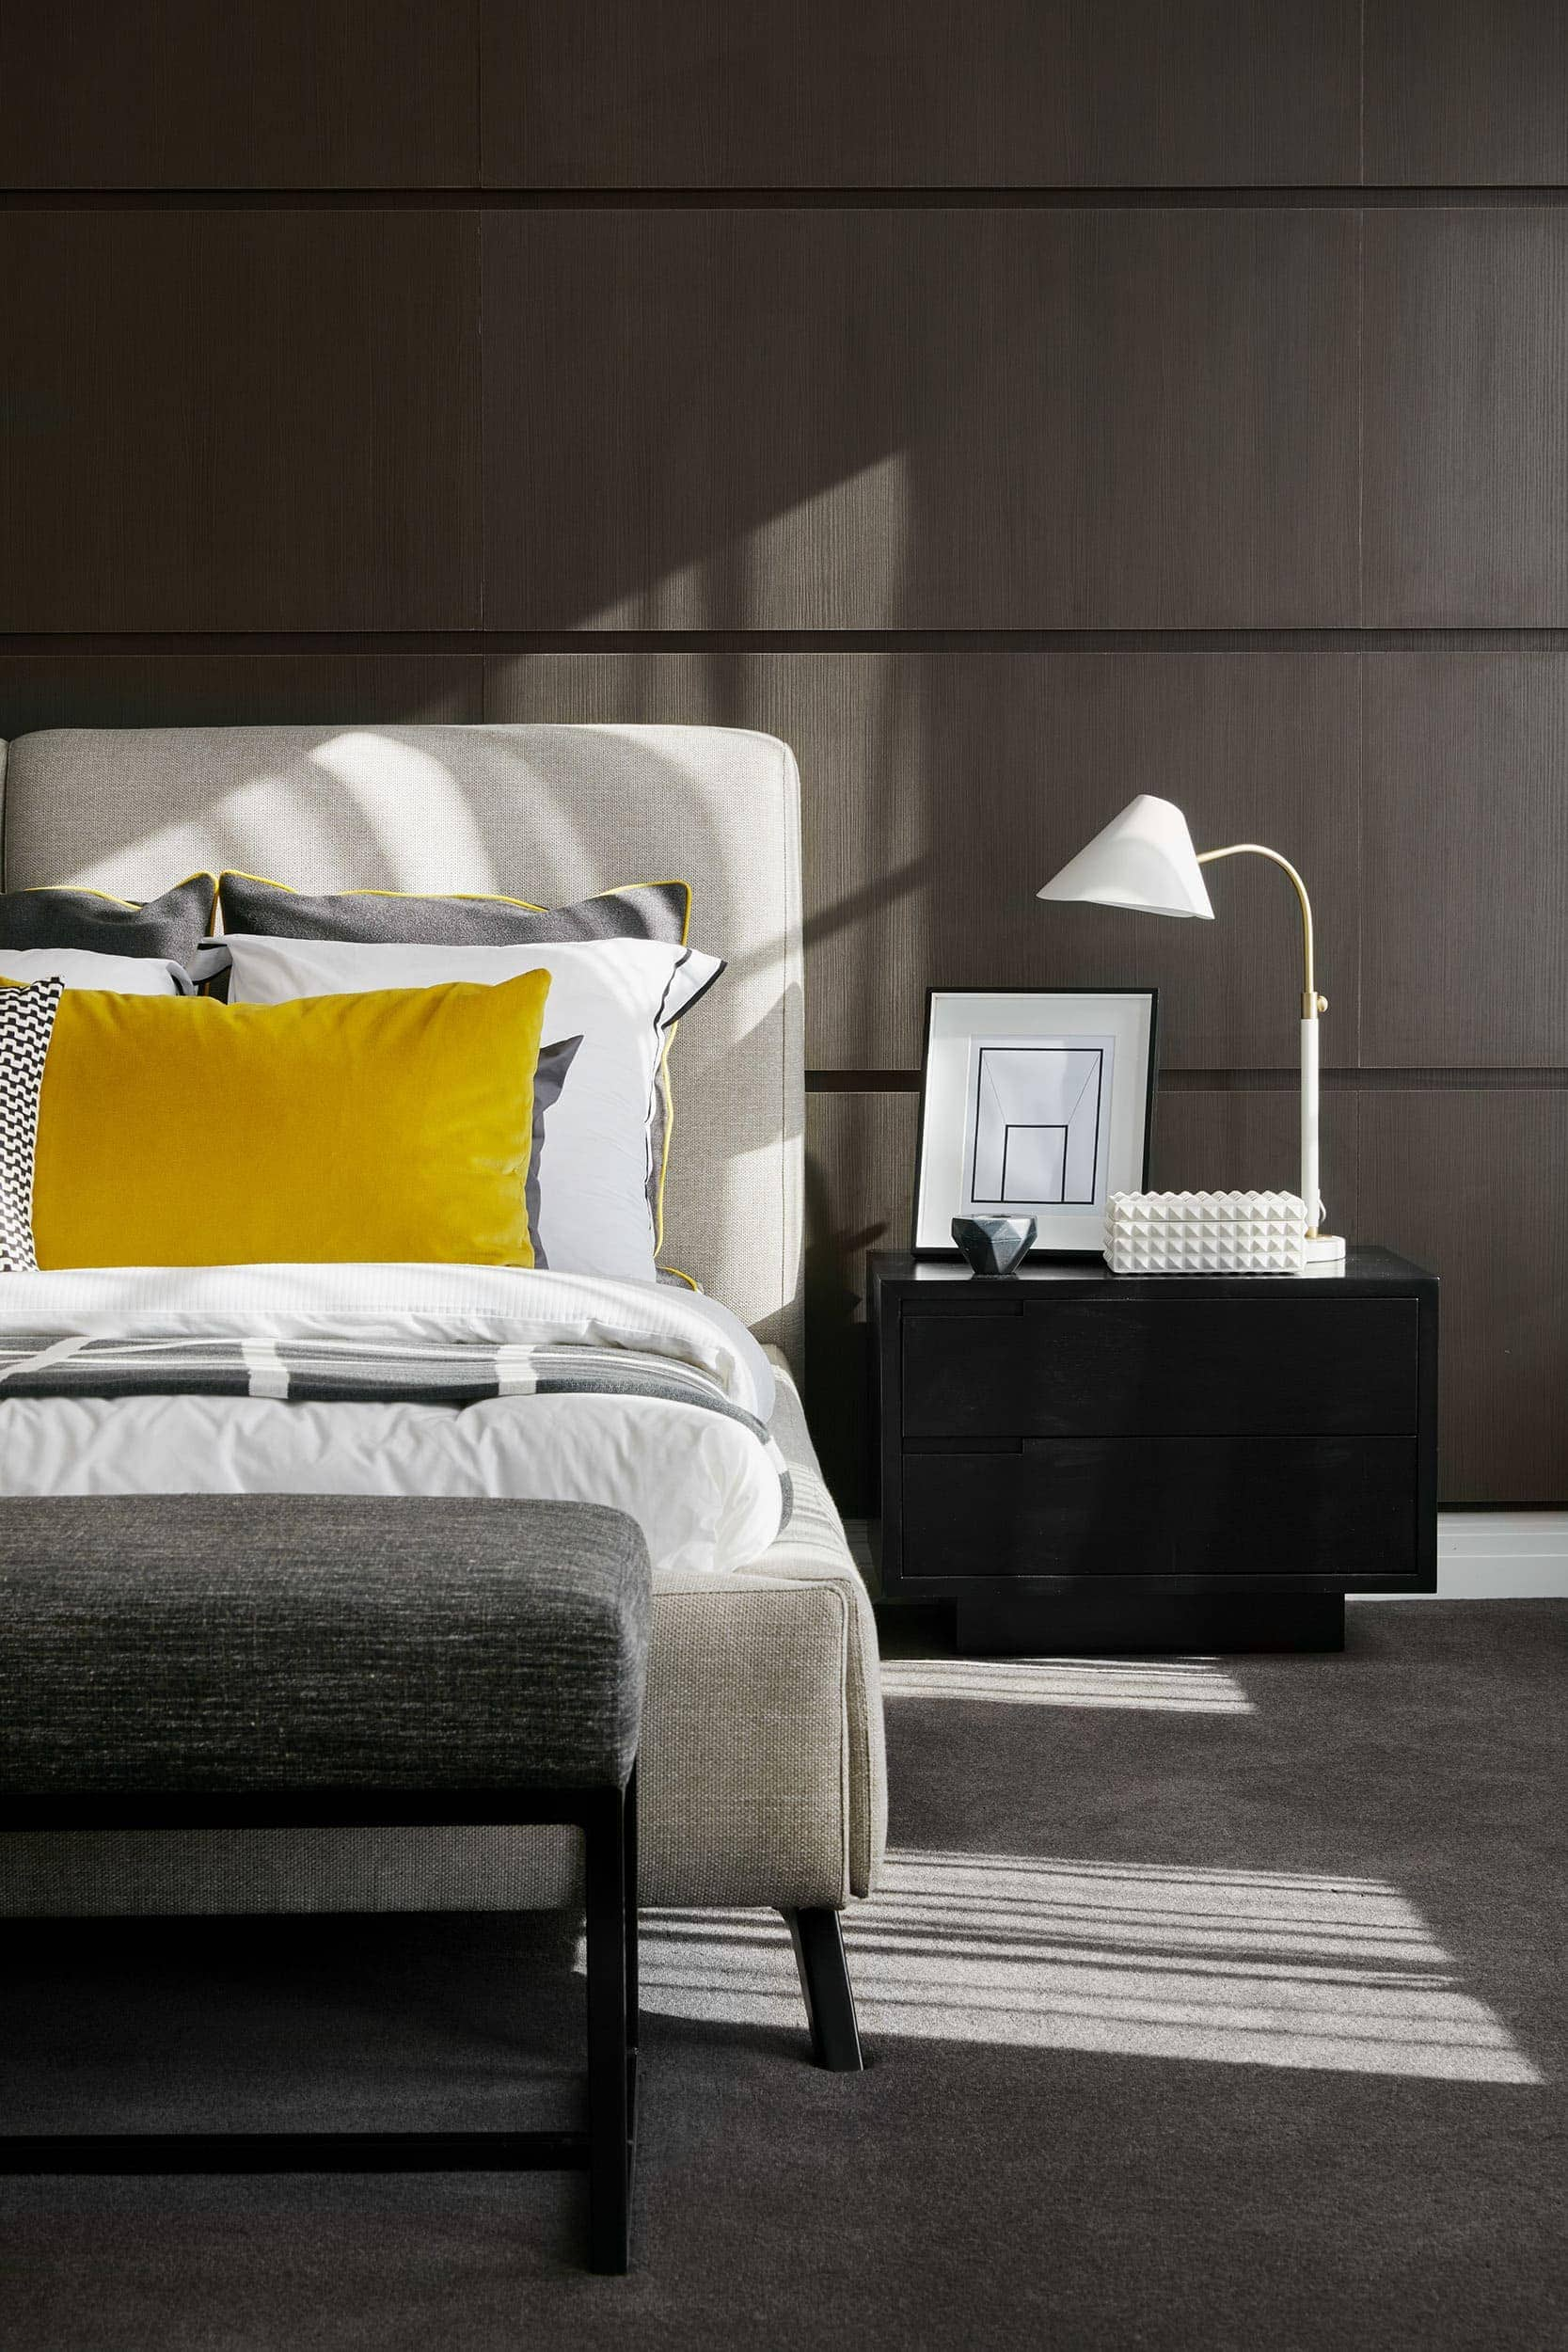 Your guide to the most popular interior design styles Master bedroom with yellow walls